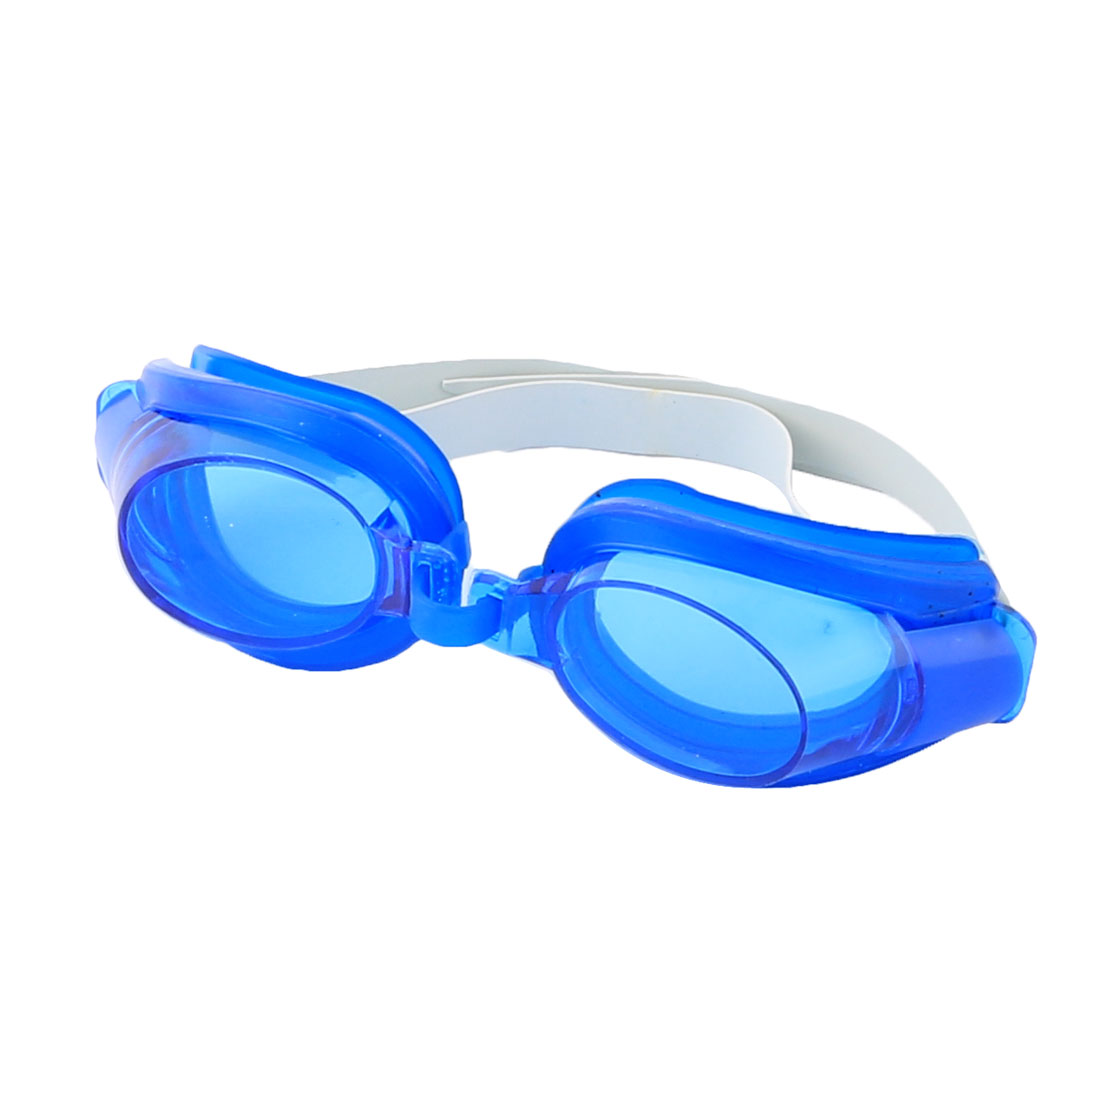 Adult Plastic Frame Silicone Swimming Goggles Spectacles Earplugs Nose Clips Set